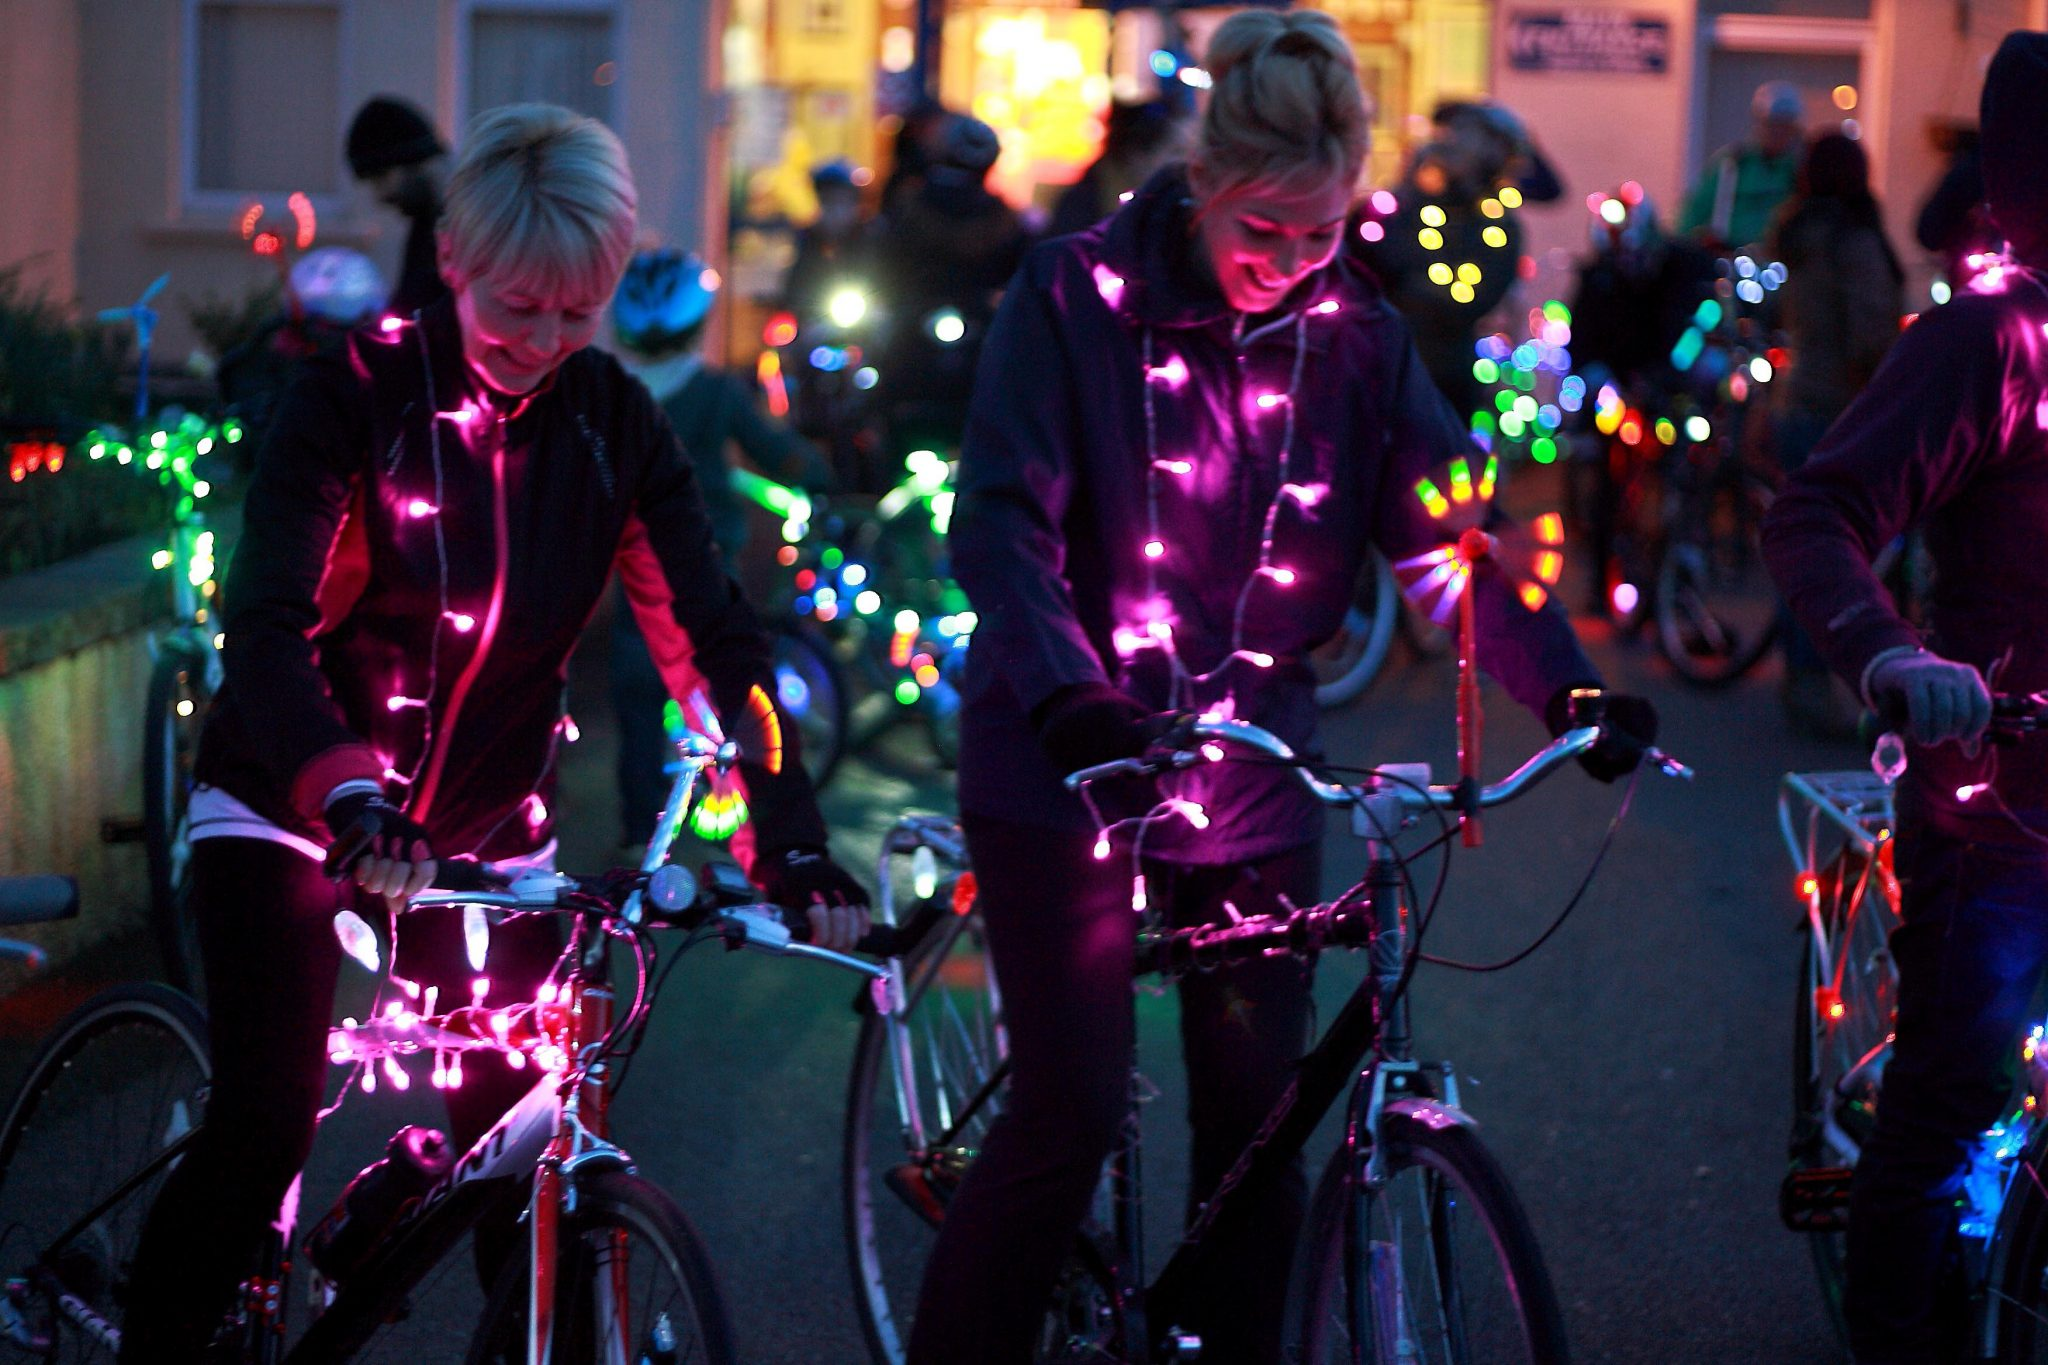 Image description: A group of cyclists are gathered together their bikes and themselves decorated with fairy lights of different colours, pink , green, blue etc. Two women at the front both smiling and looking at their bikes preparing to set off.